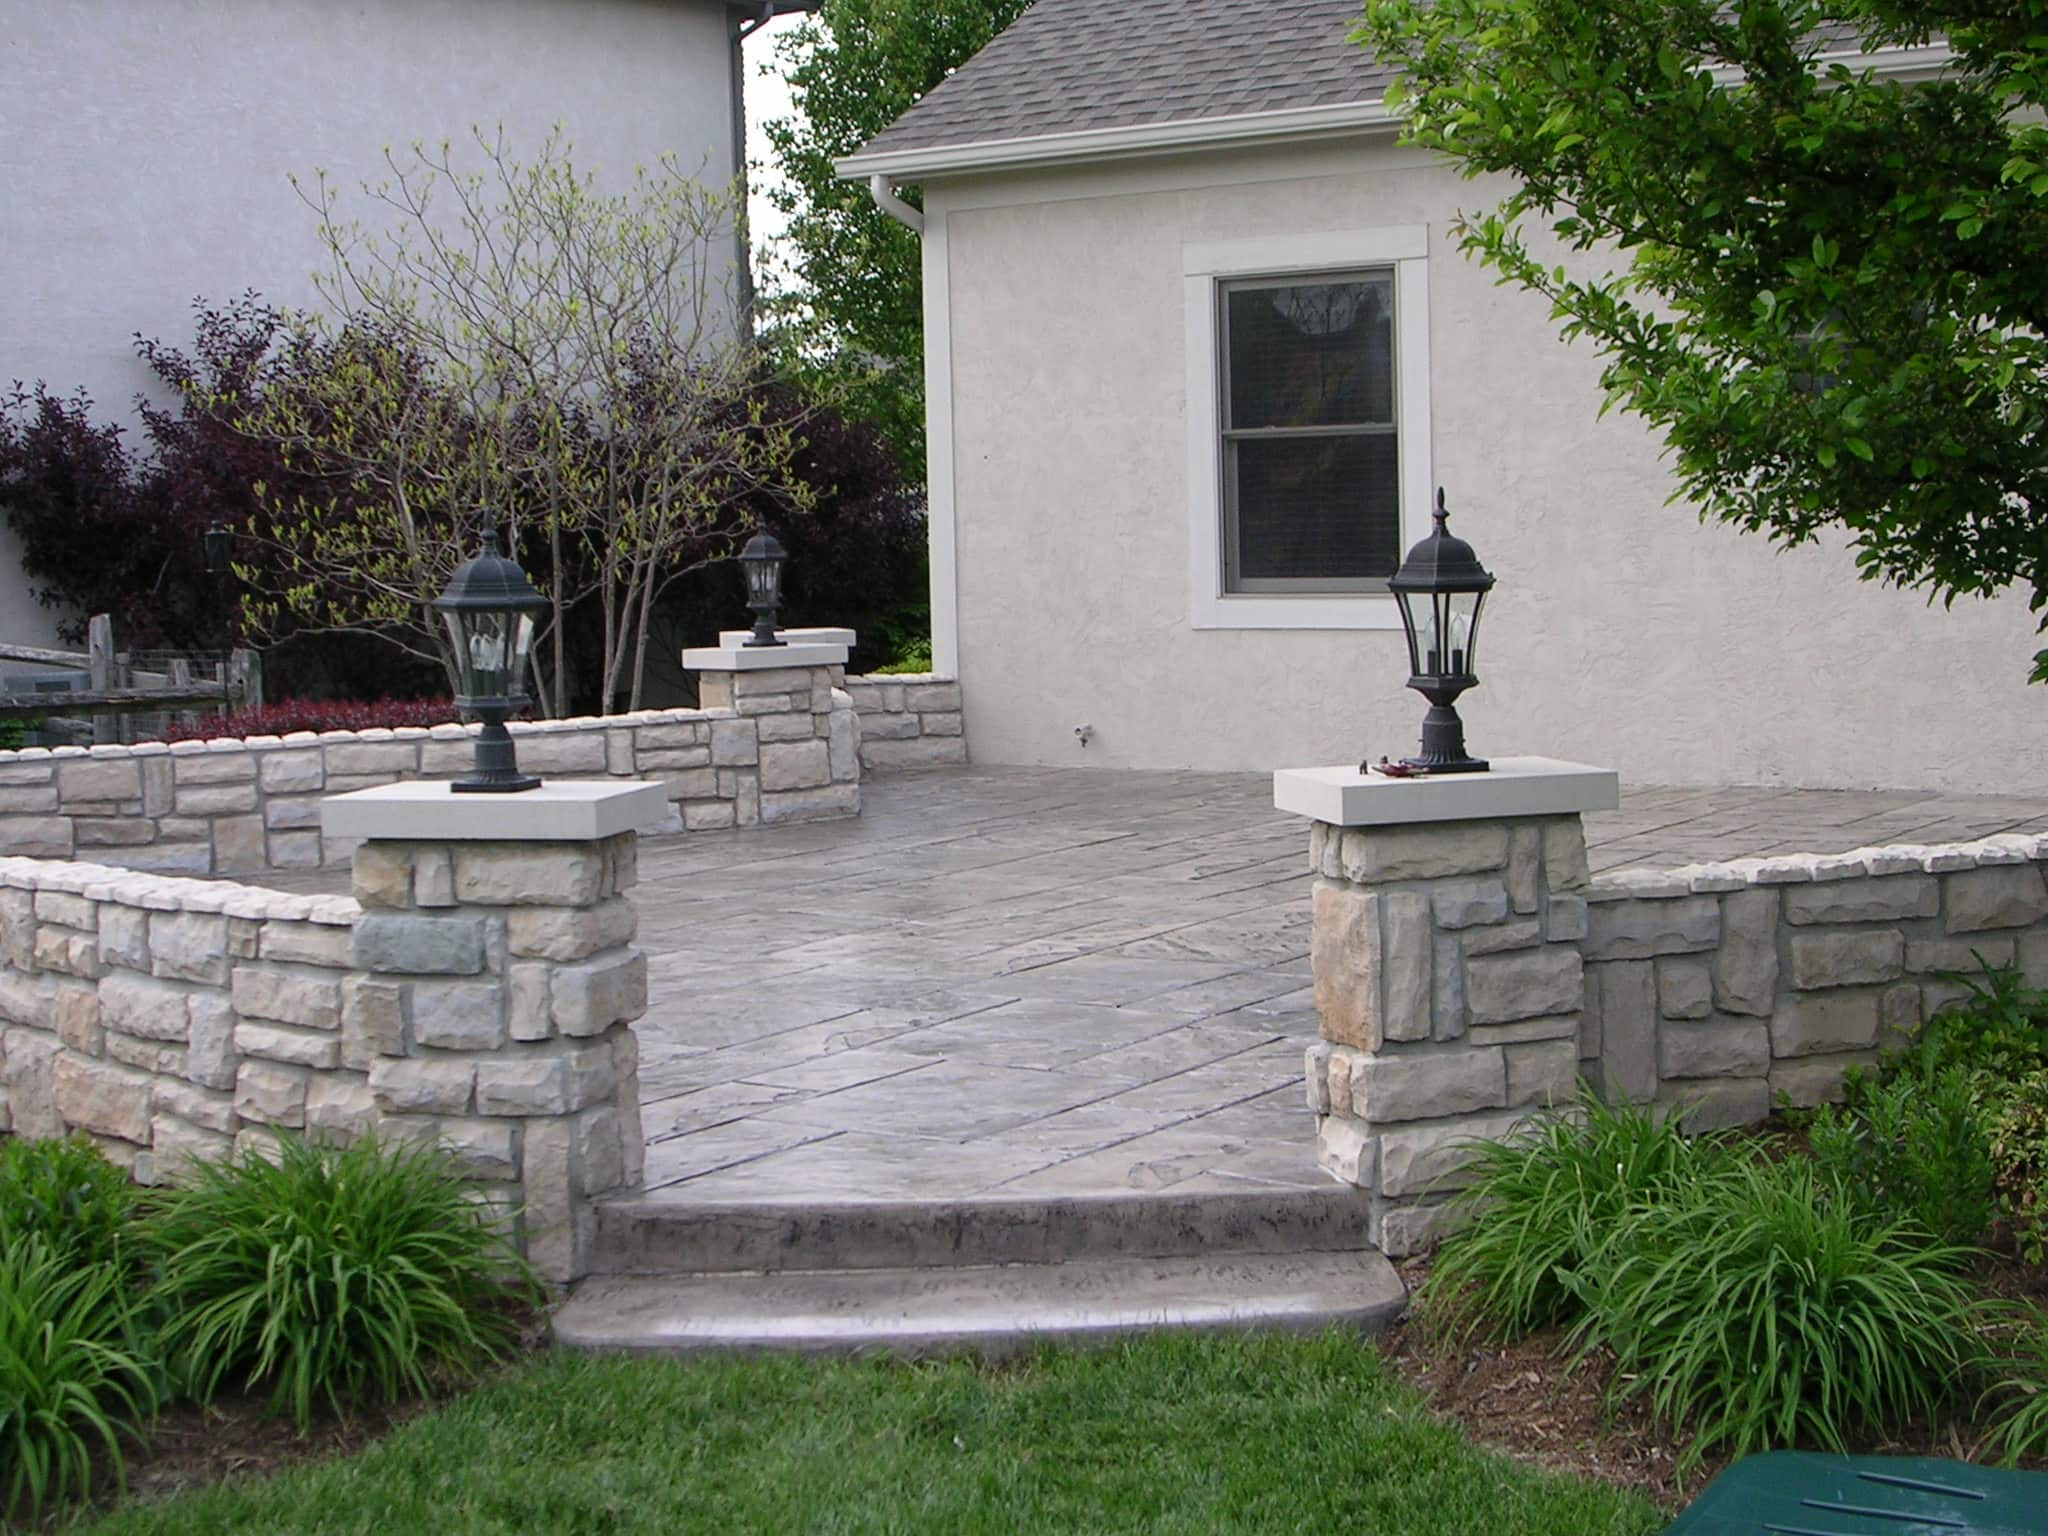 Natural Stone likewise Sandstone Patio besides Paving  parison Indian Sandstone besides Professional Paving Awards besides Outdoor Living Patios. on paving stone patio design ideas